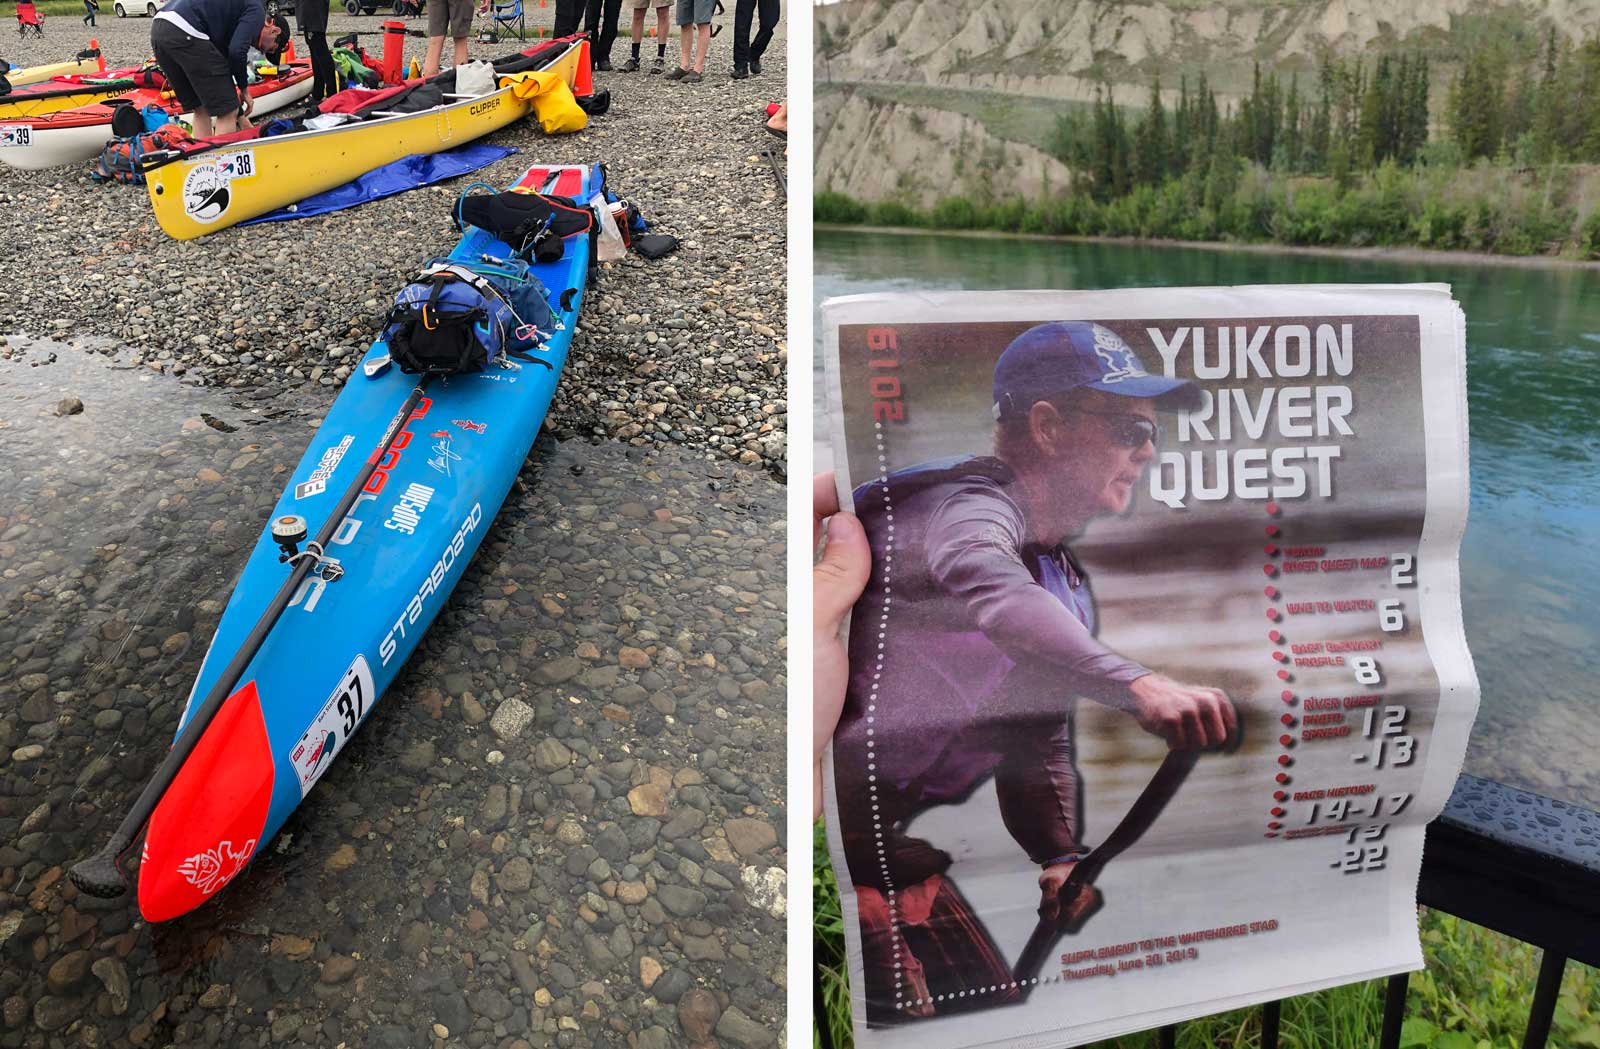 Bart-Conquers-4th-Yukon-River-Quest-stand-up-paddleboard-sup-all-star-with-gear-newspaper-front-page-whitehorse-dawson-city-Canada-1600